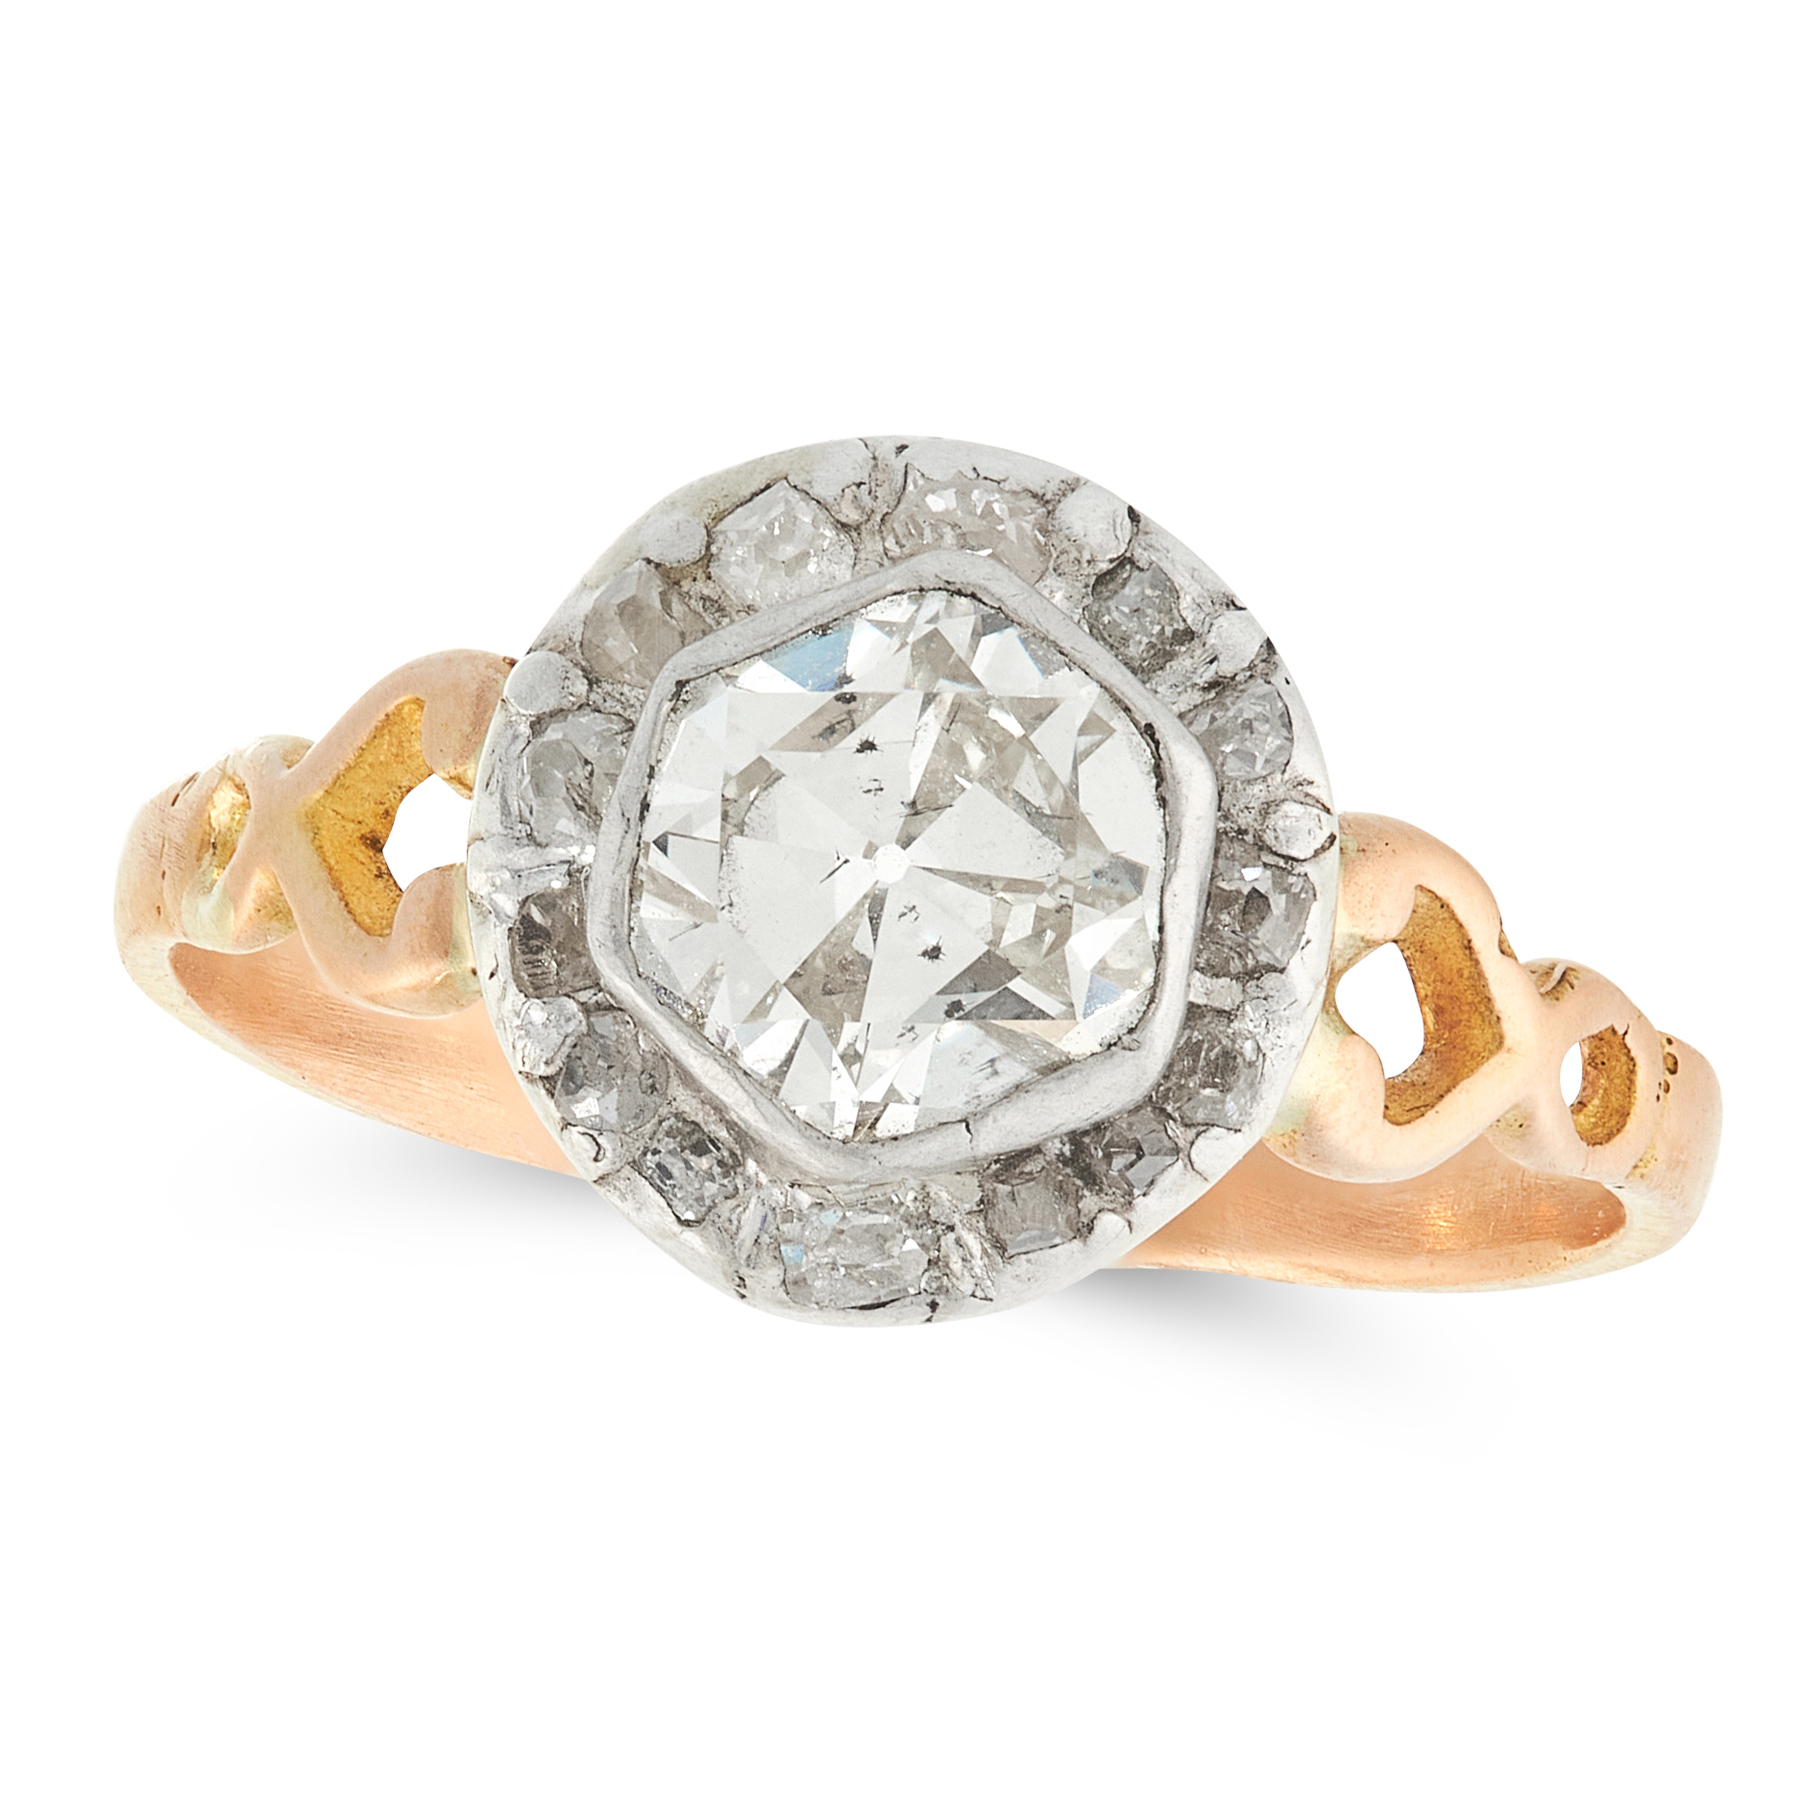 AN ANTIQUE DIAMOND SOLITAIRE RING, 19TH CENTURY in yellow gold and silver, set with a central - Image 2 of 2